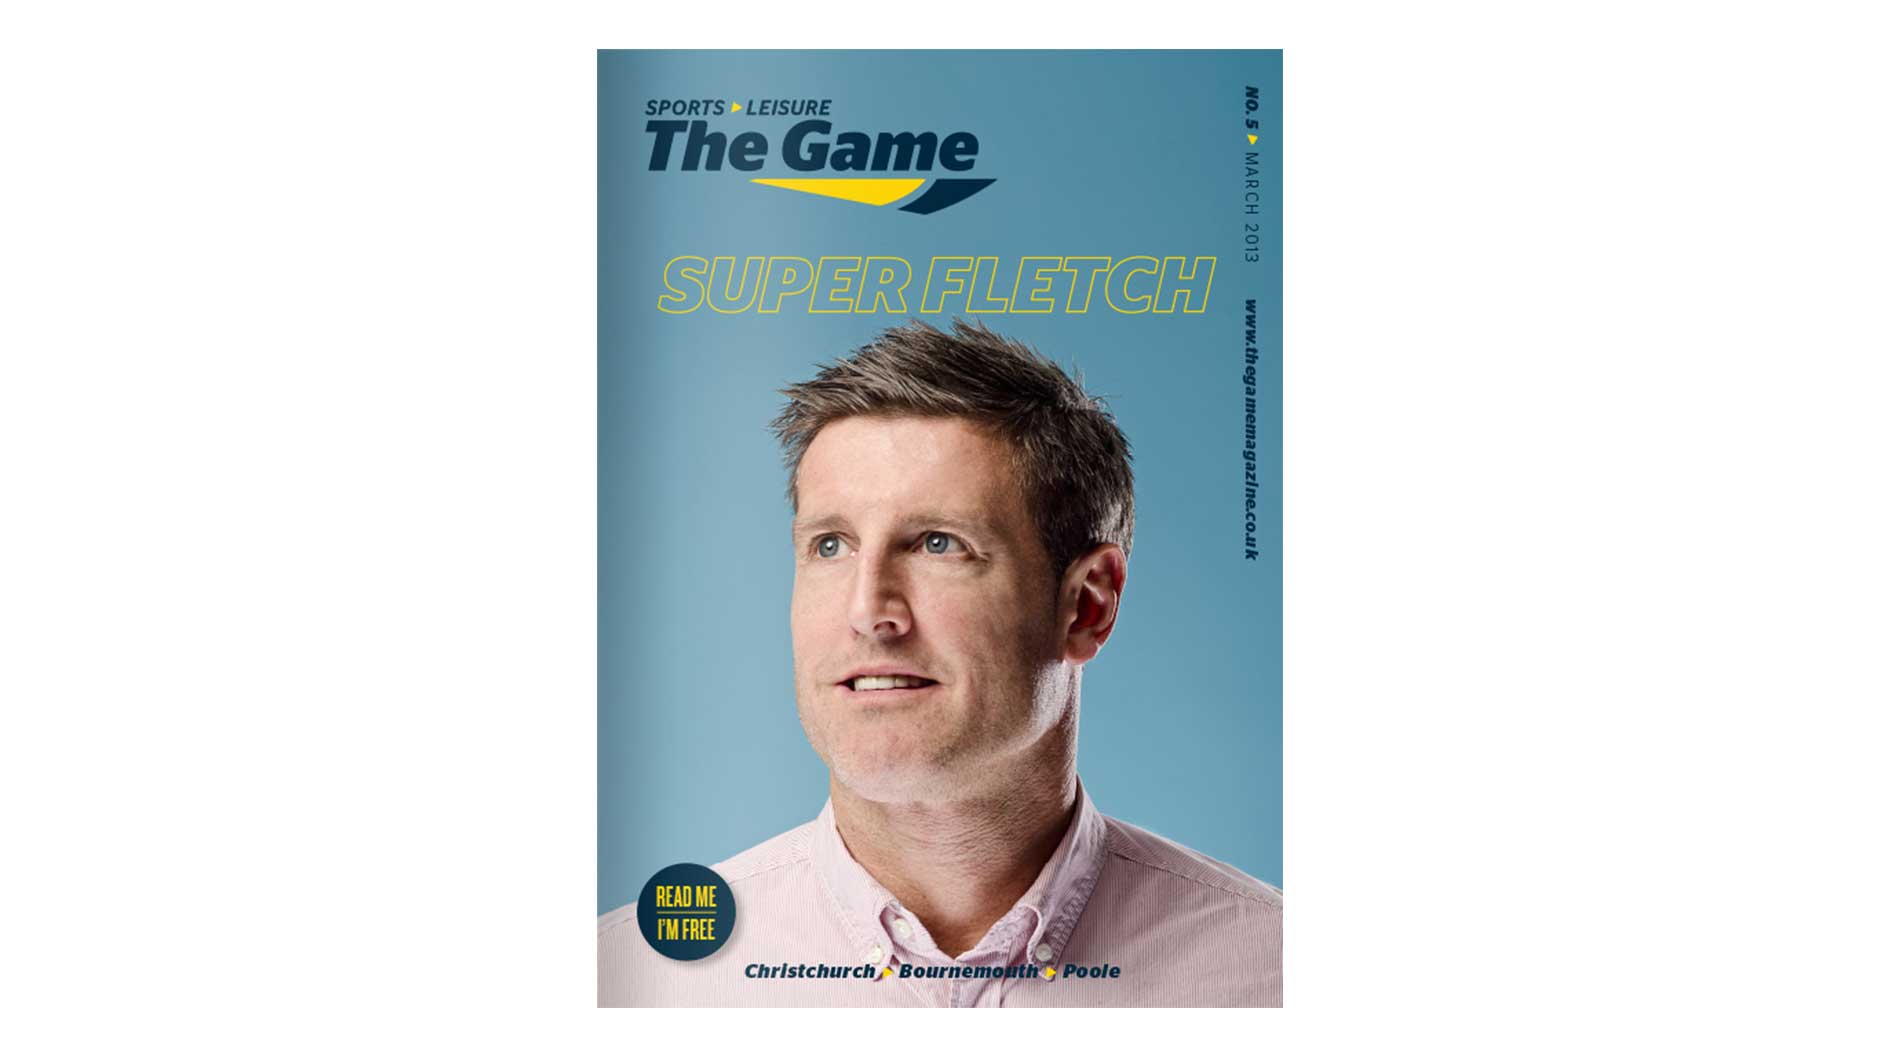 Game Magazine front cover March 2013 issue